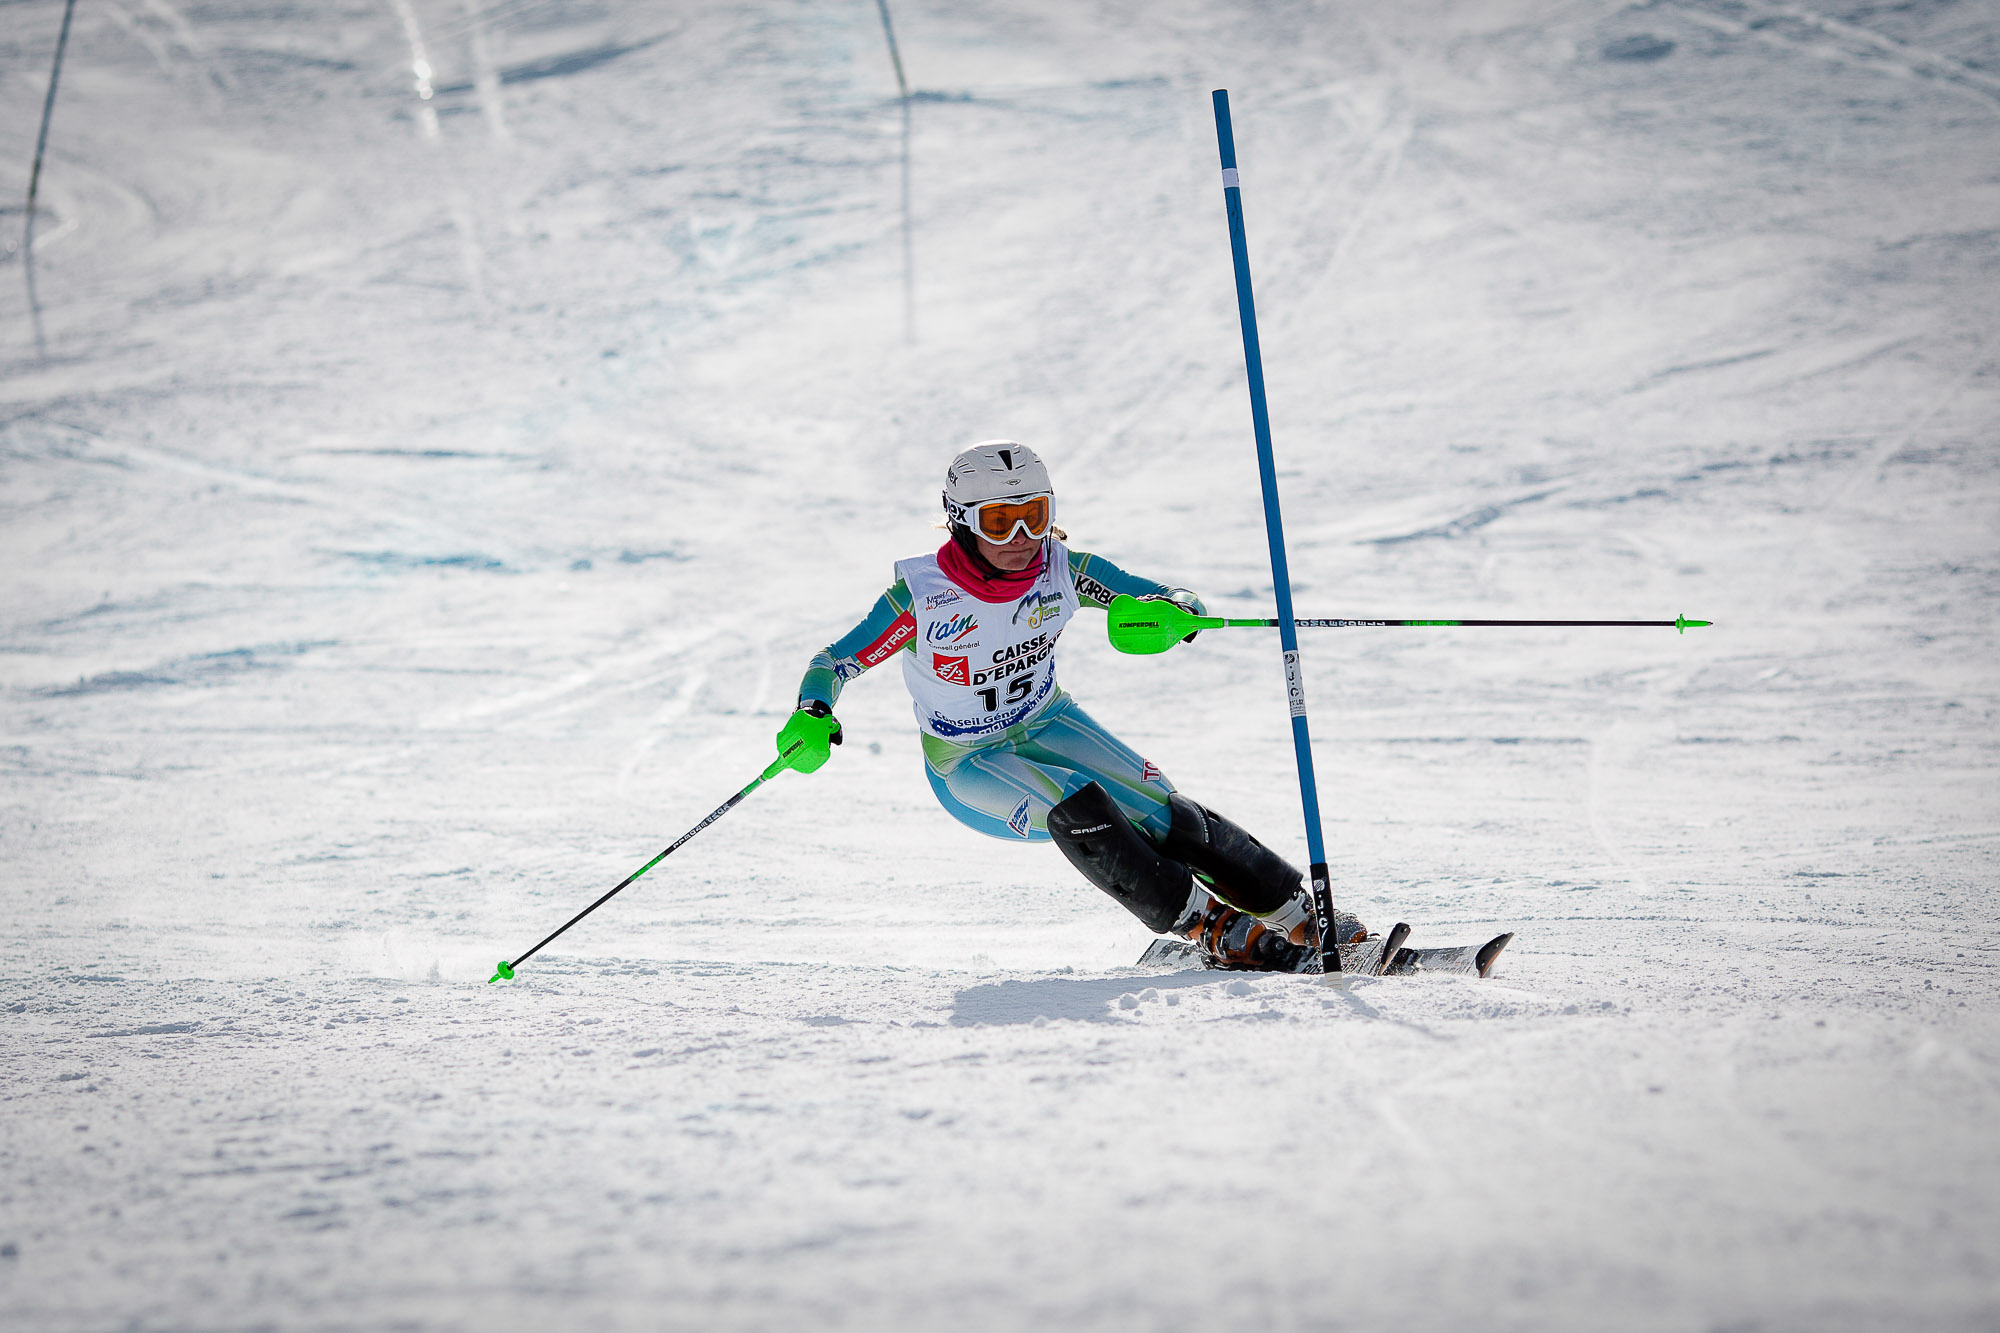 Coupe_Europe_ski_dames-372.jpg